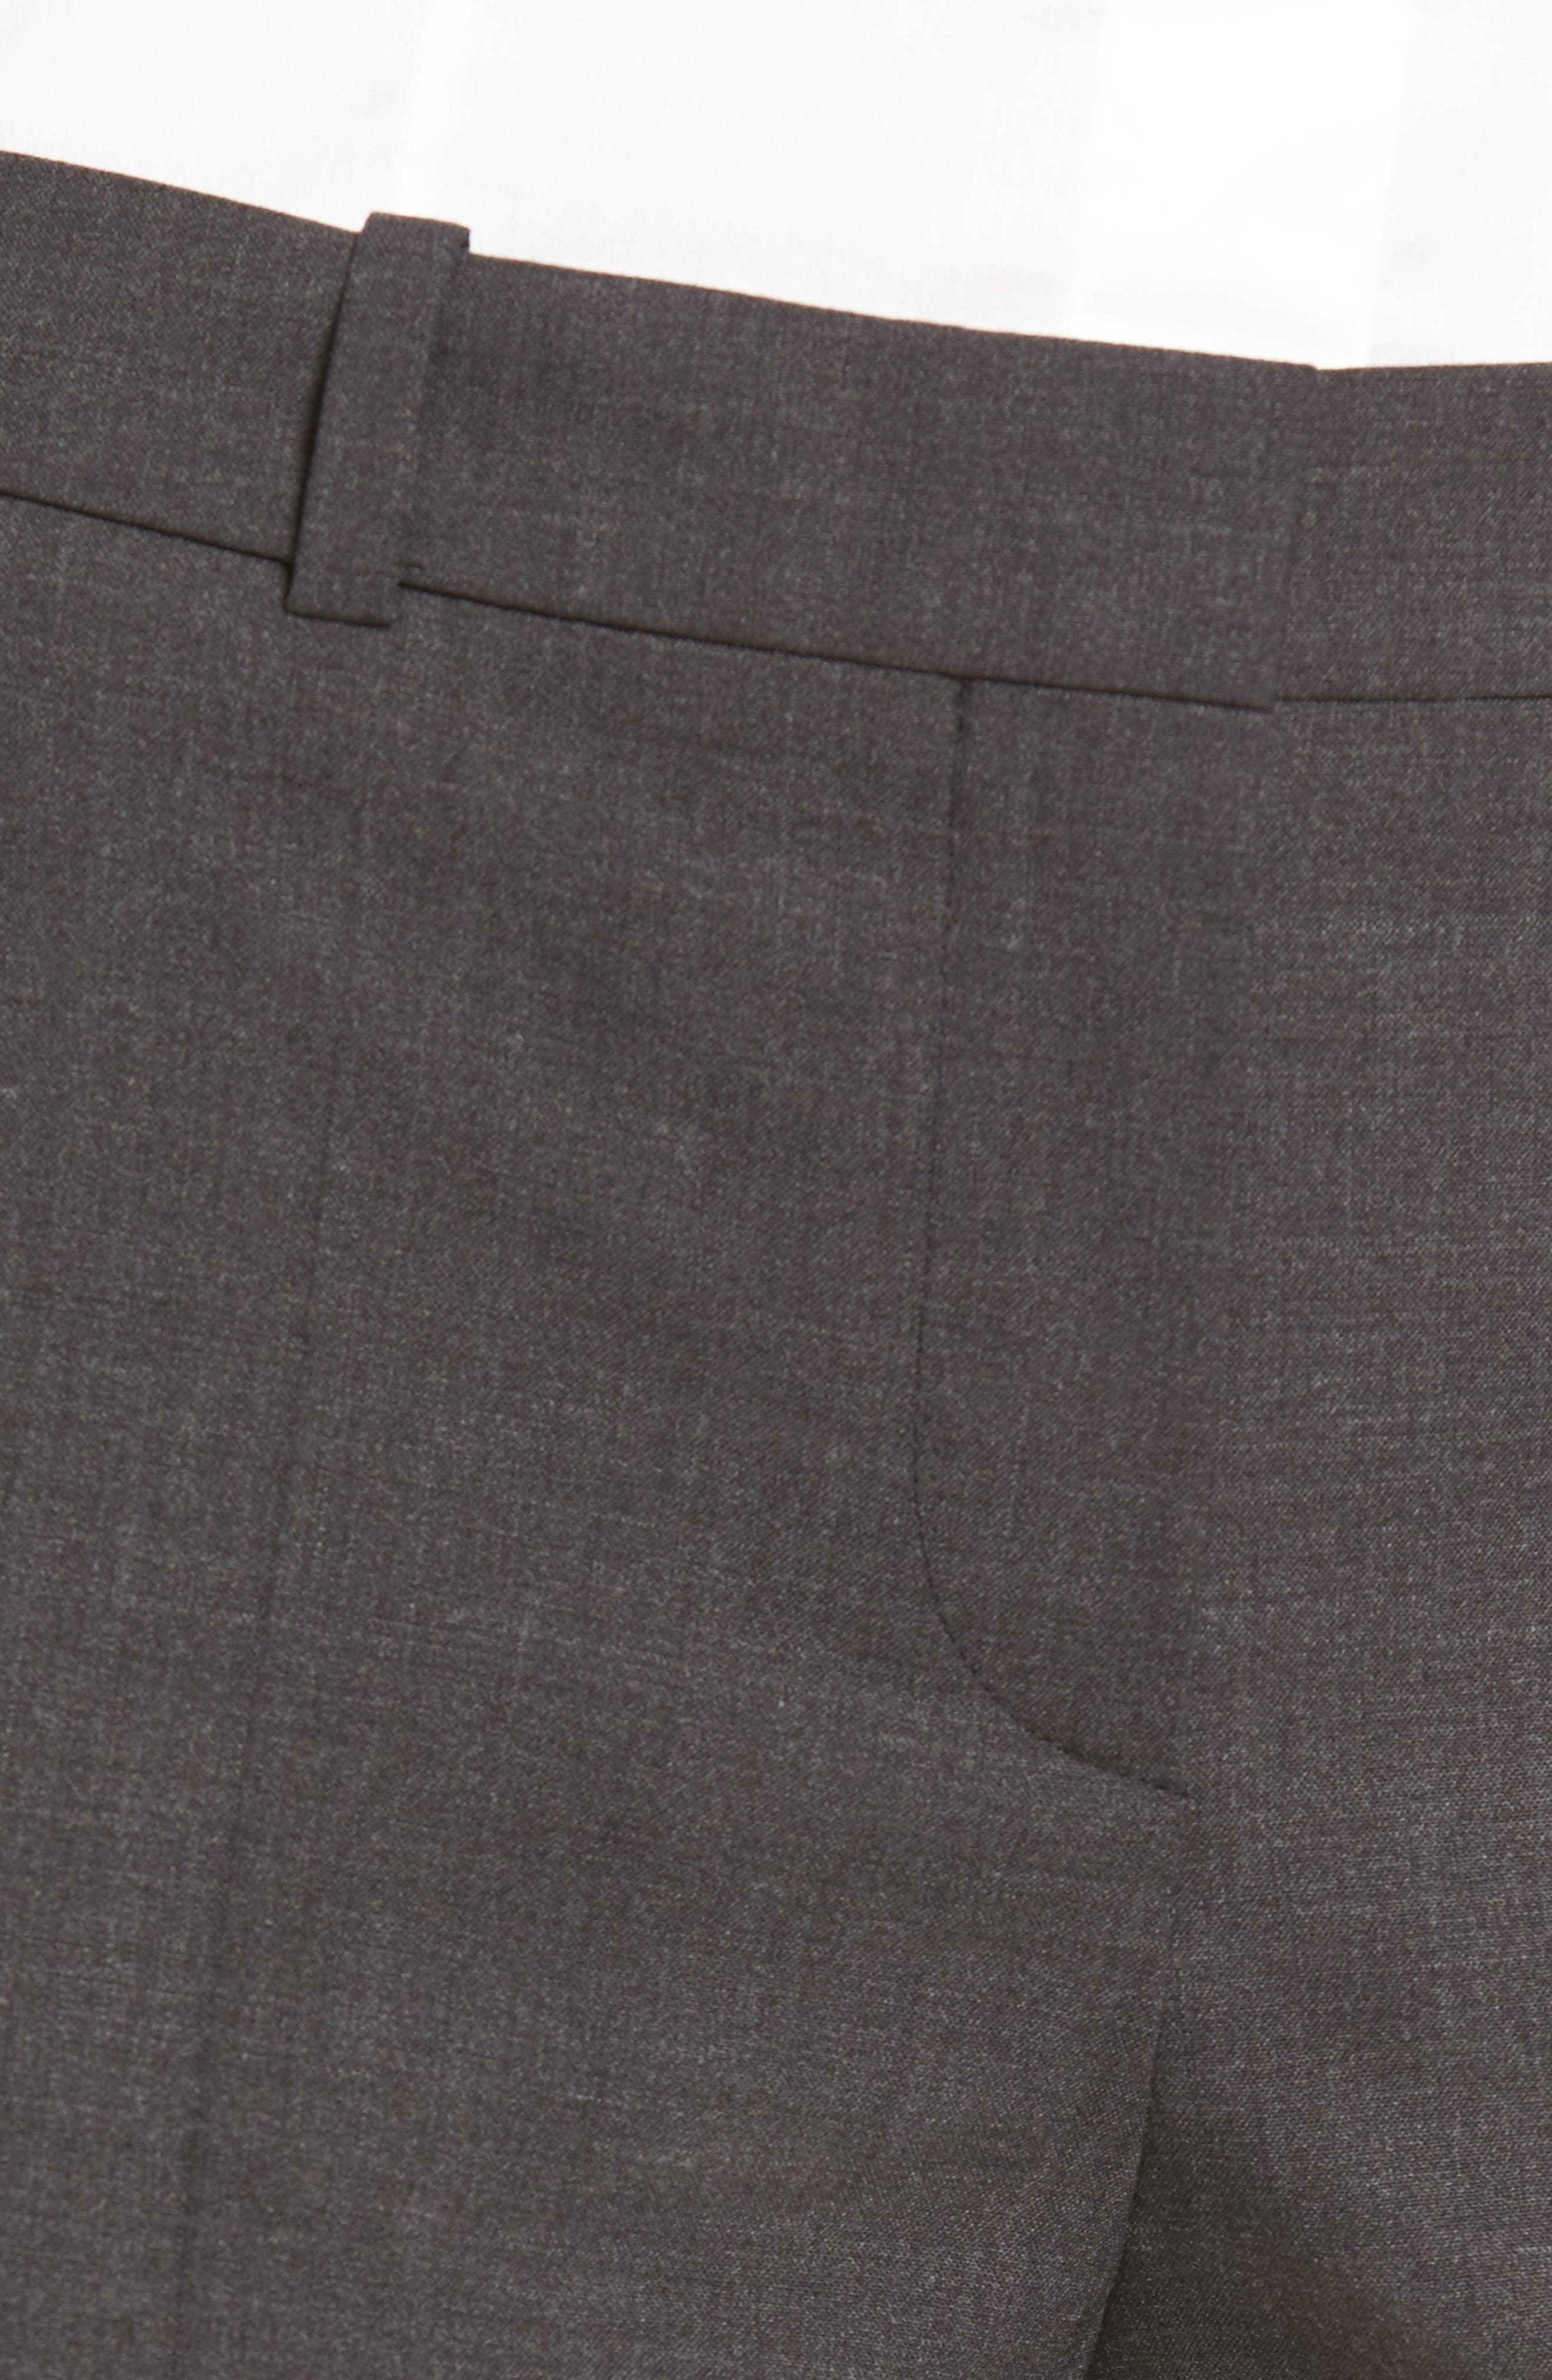 BOSS, Tulea3 Tropical Stretch Wool Trousers, Alternate thumbnail 5, color, CHARCOAL